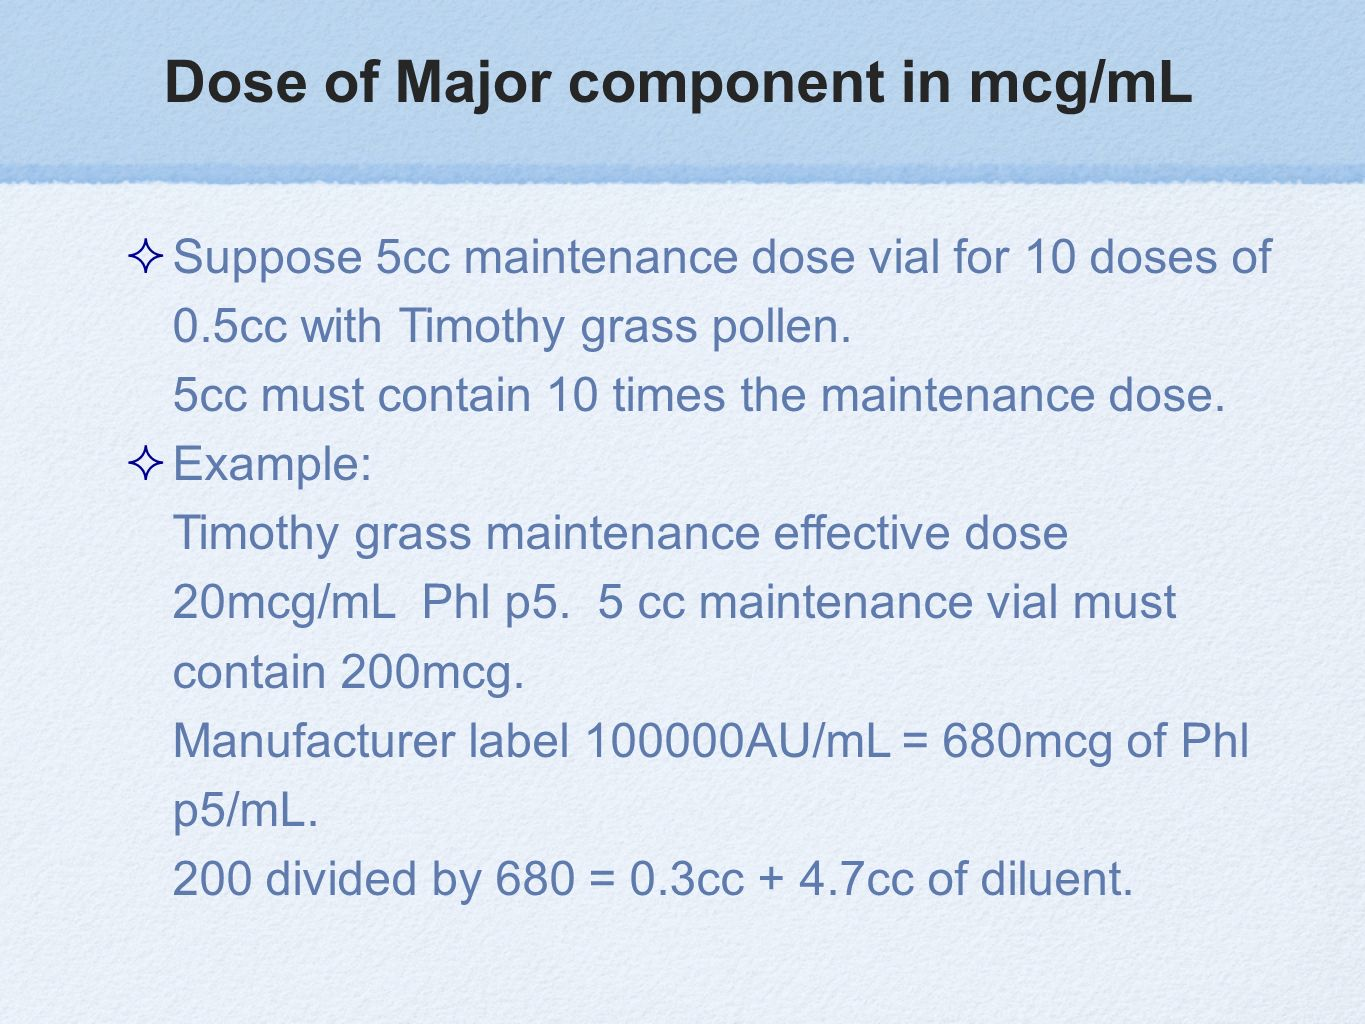 Dose of Major component in mcg/mL